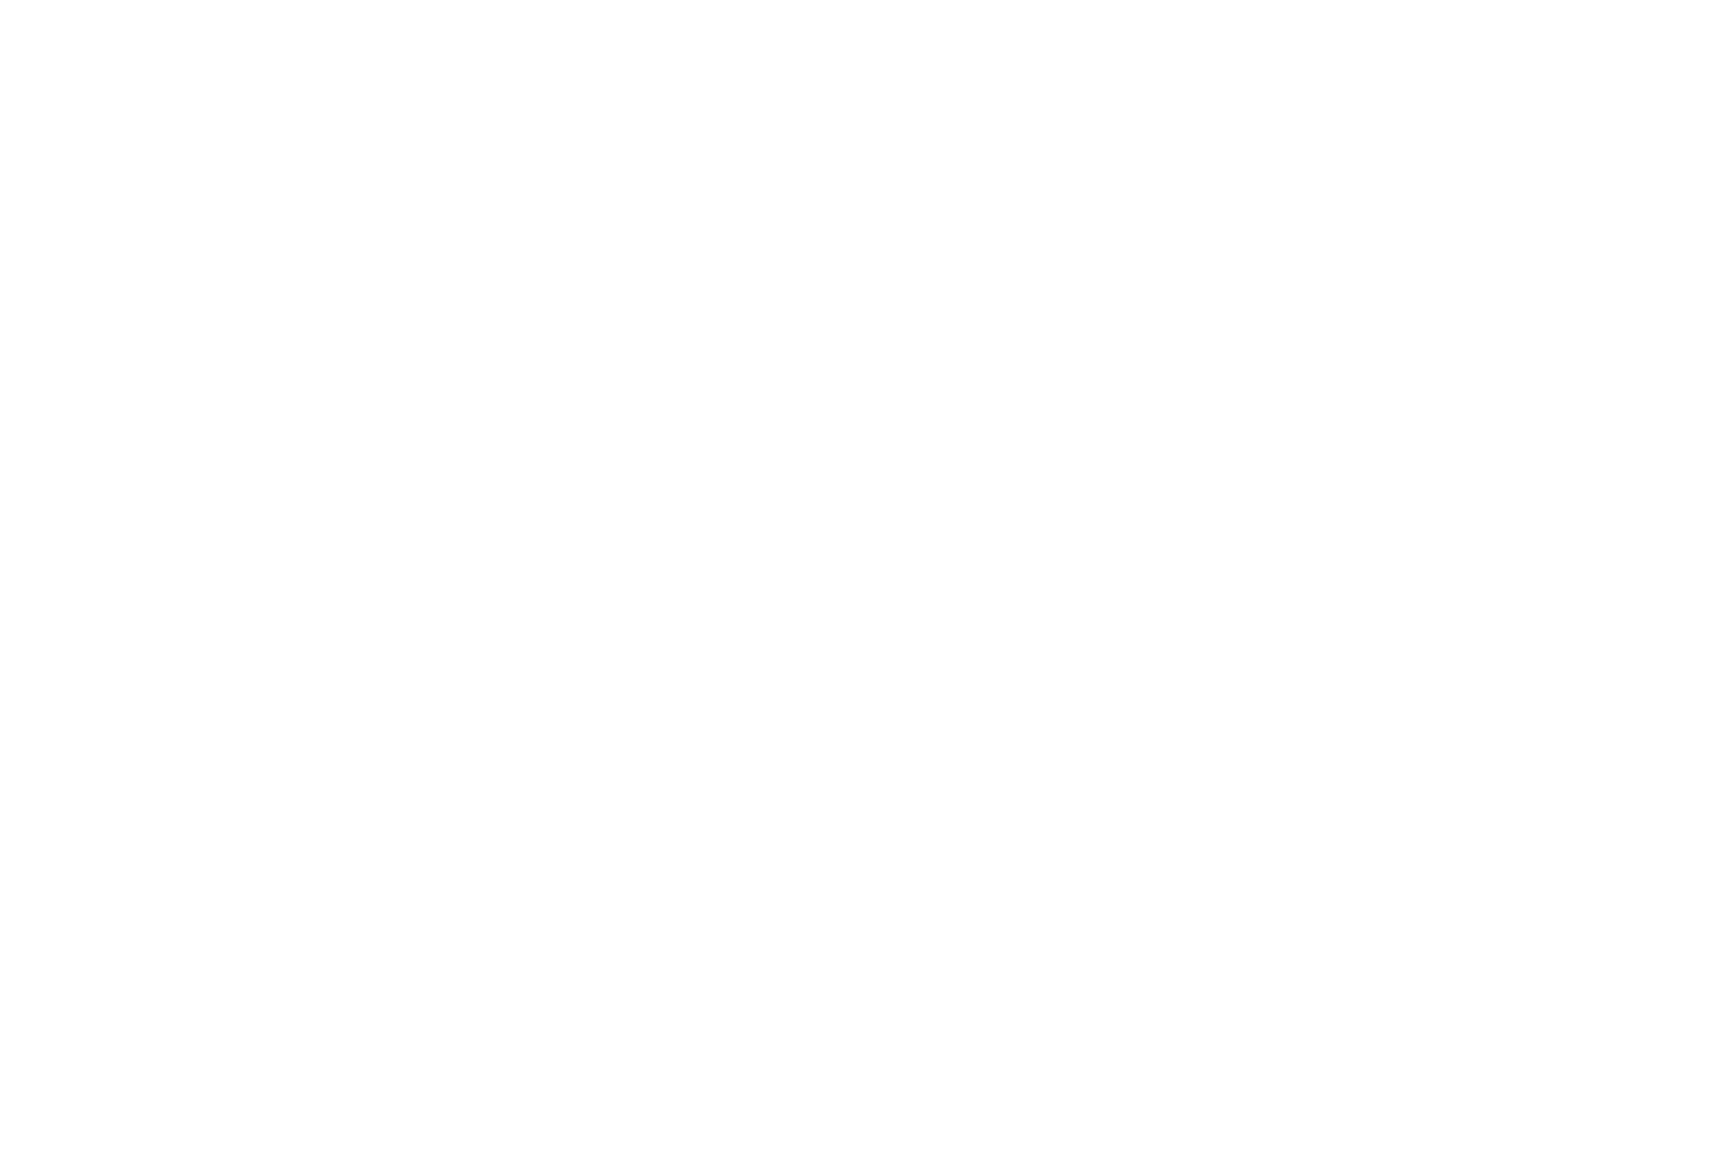 WINNER - Asean International Film Festival  Awards - 2015.png